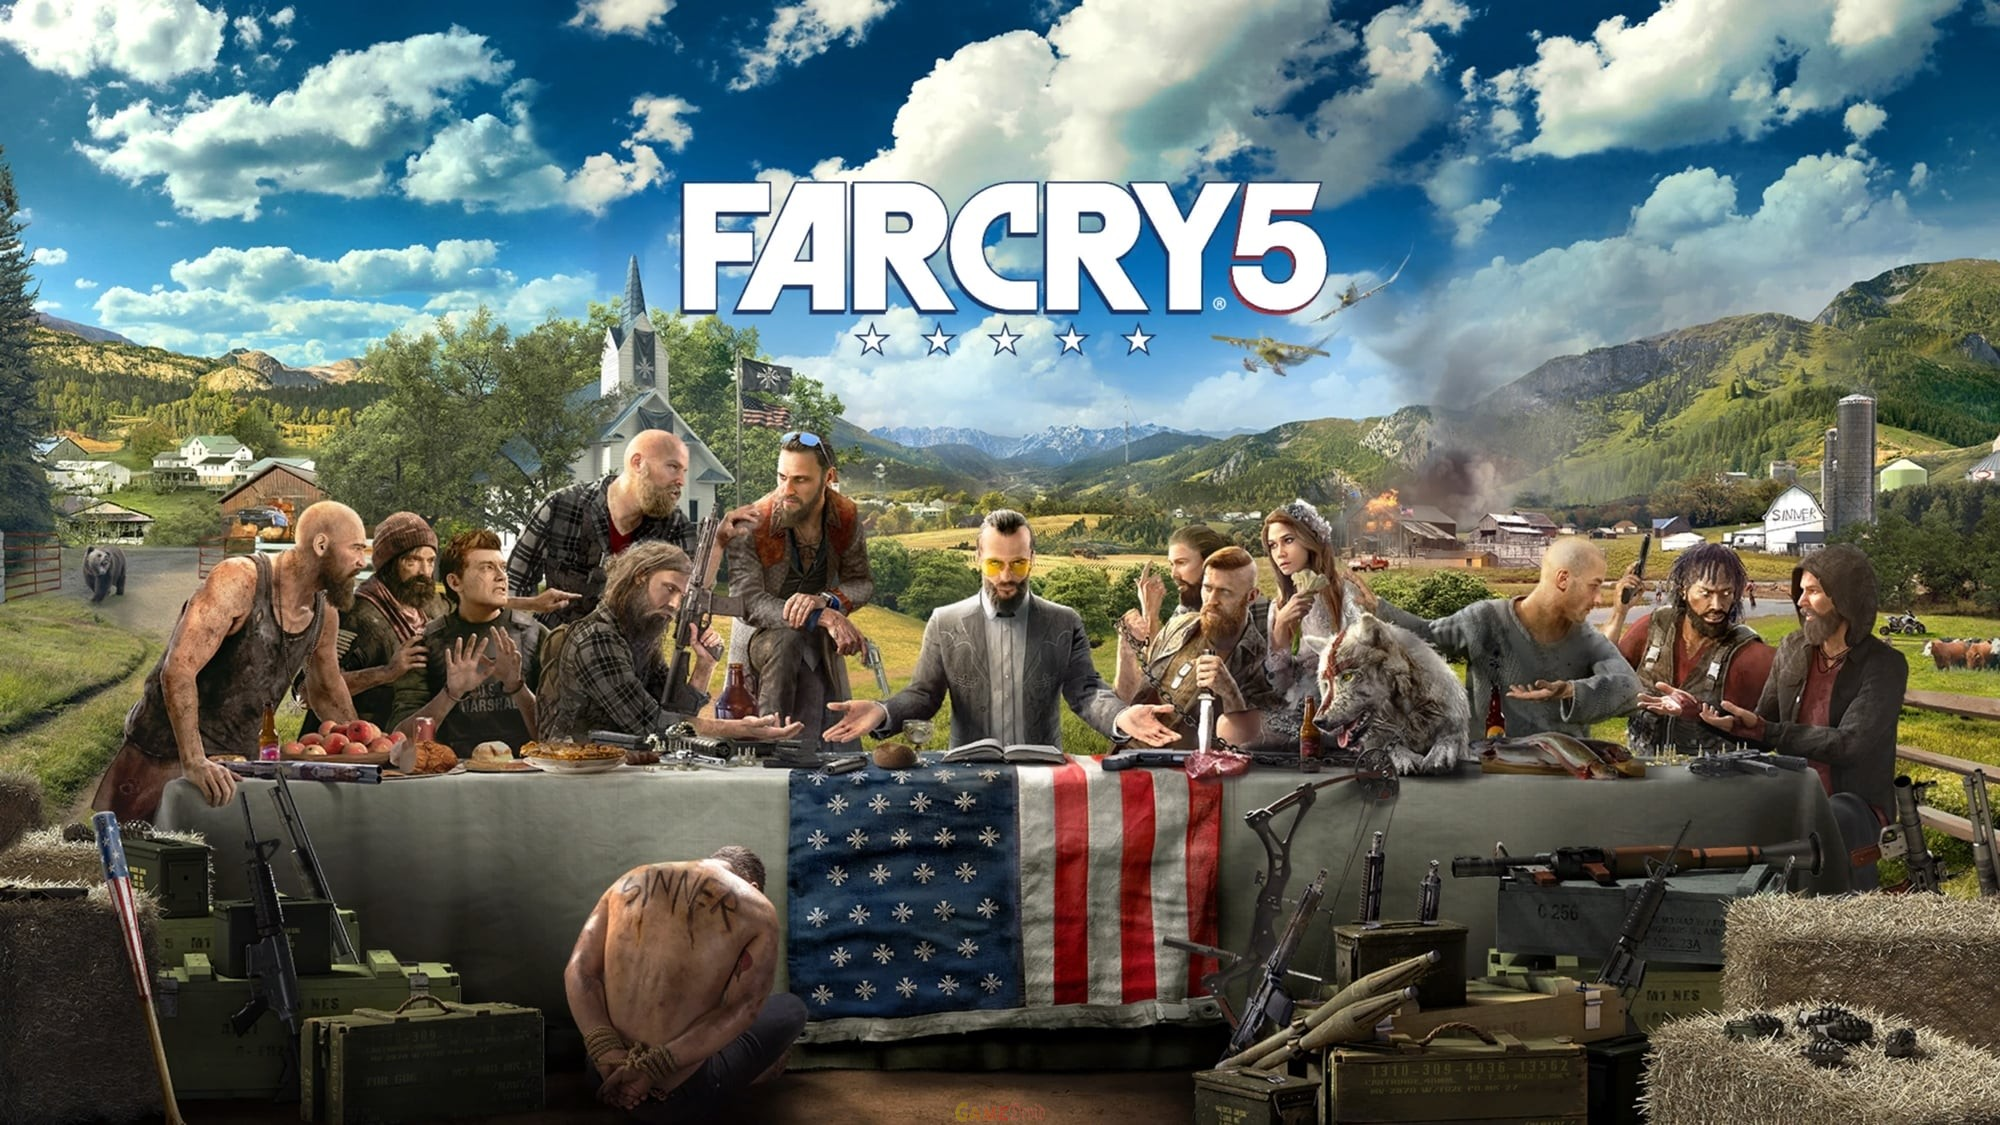 FAR CRY 5 Mobile Android Game Version APK Download